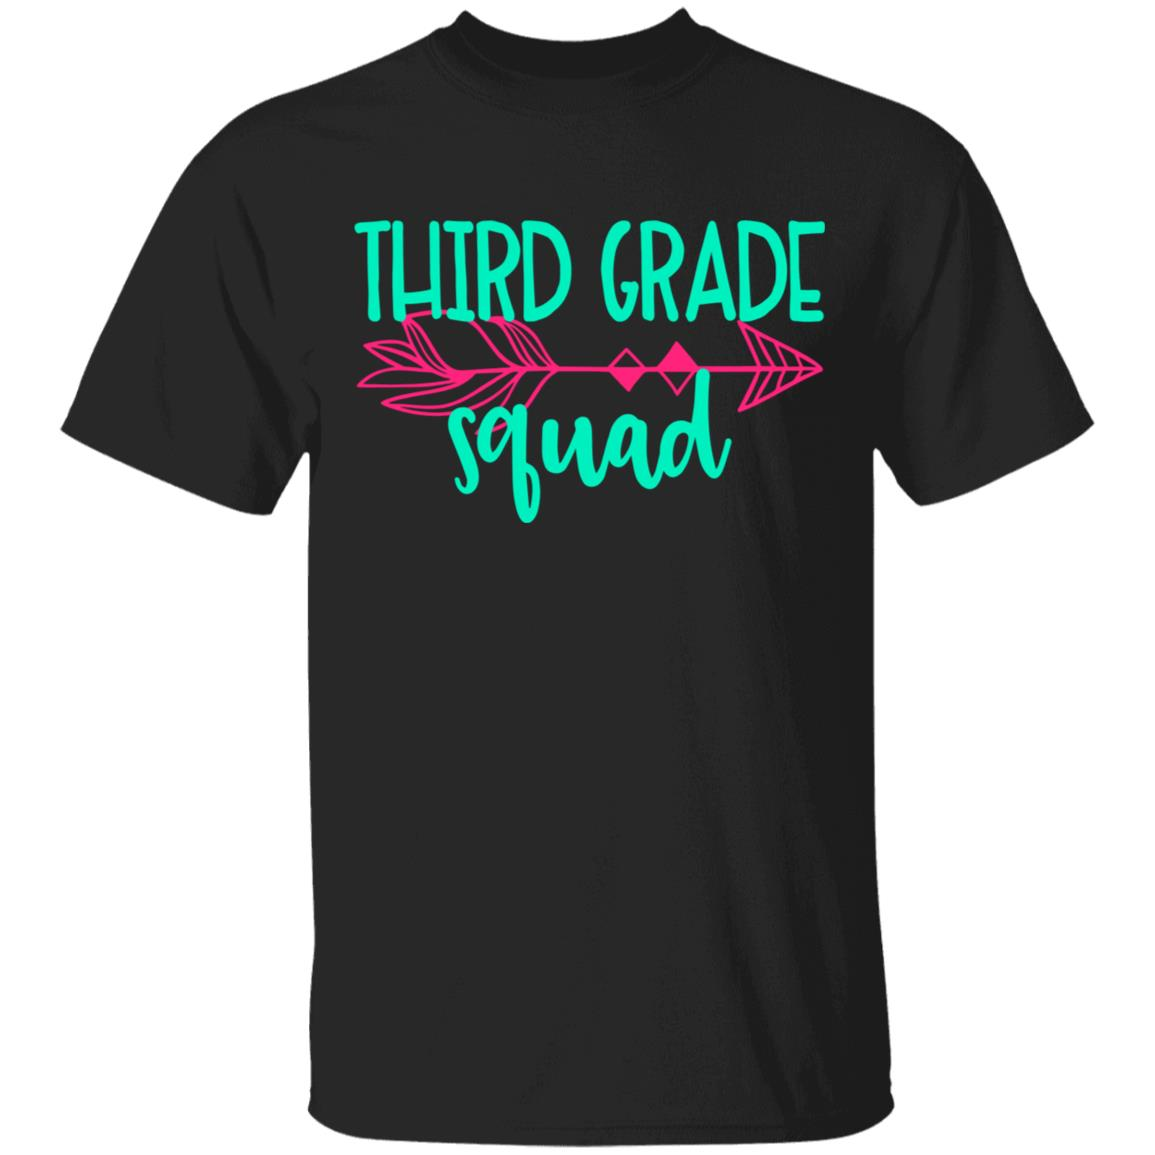 Third 3rd Grade Squad (TeamGroup) Tee Teacher Unisex Short Sleeve